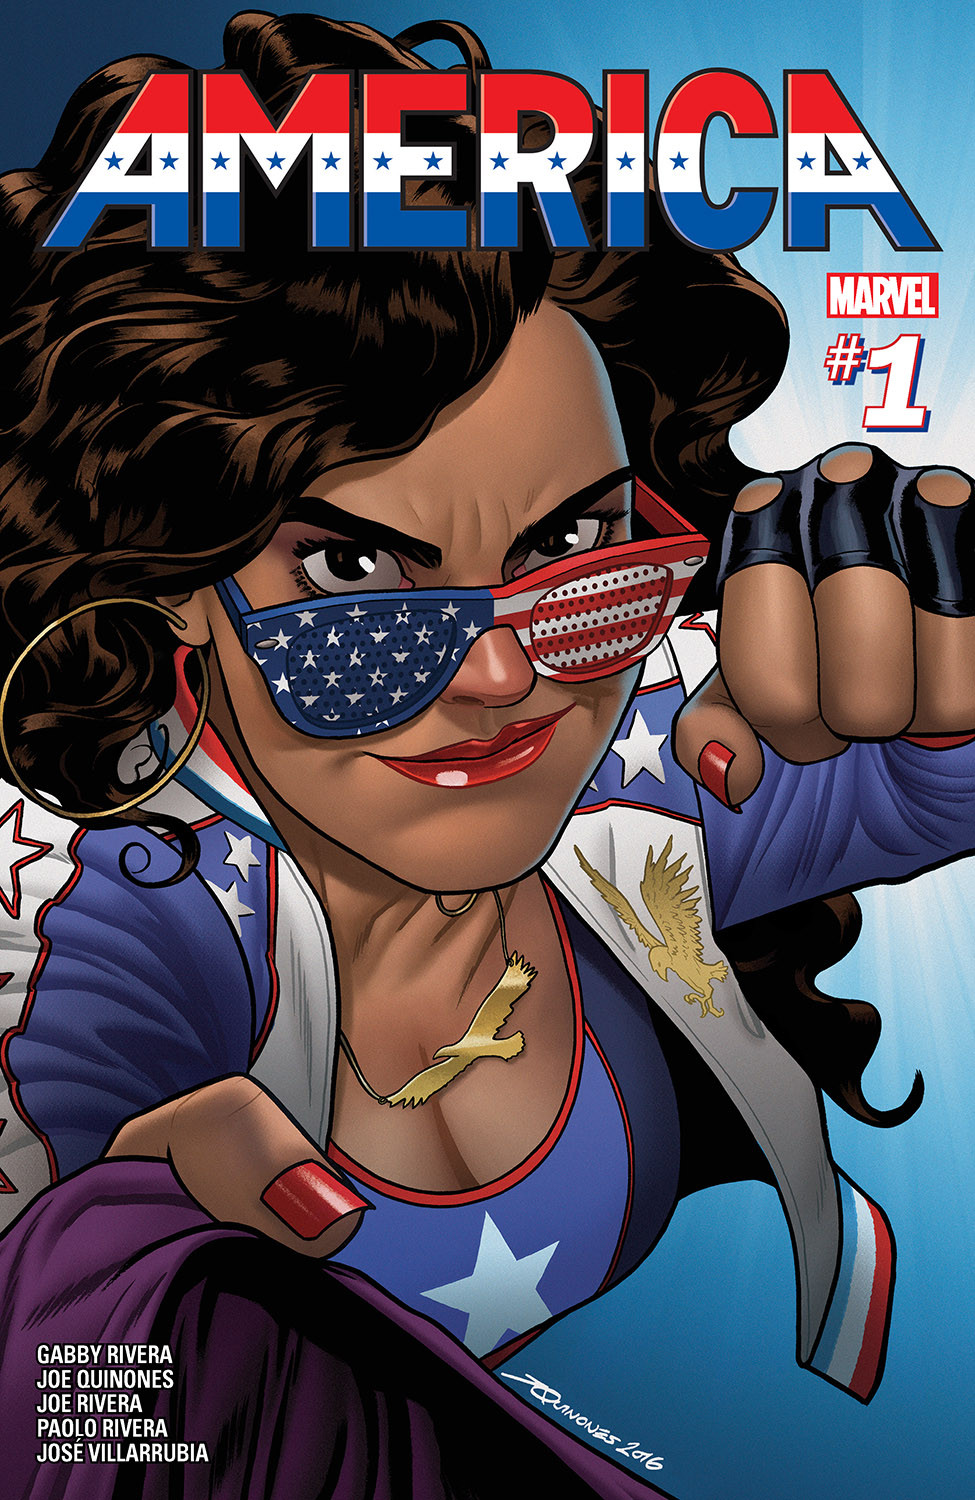 A Latinx woman, America Chavez, holds the jacket collar of an unseen individual with one hand and raises her other fist to punch the unseen individual. She faces the viewer so it appears that she is going to punch the viewer. She wears American Flag sunglasses as well as a tank top and jacket that are red, white, and blue and feature stars and golden eagles.